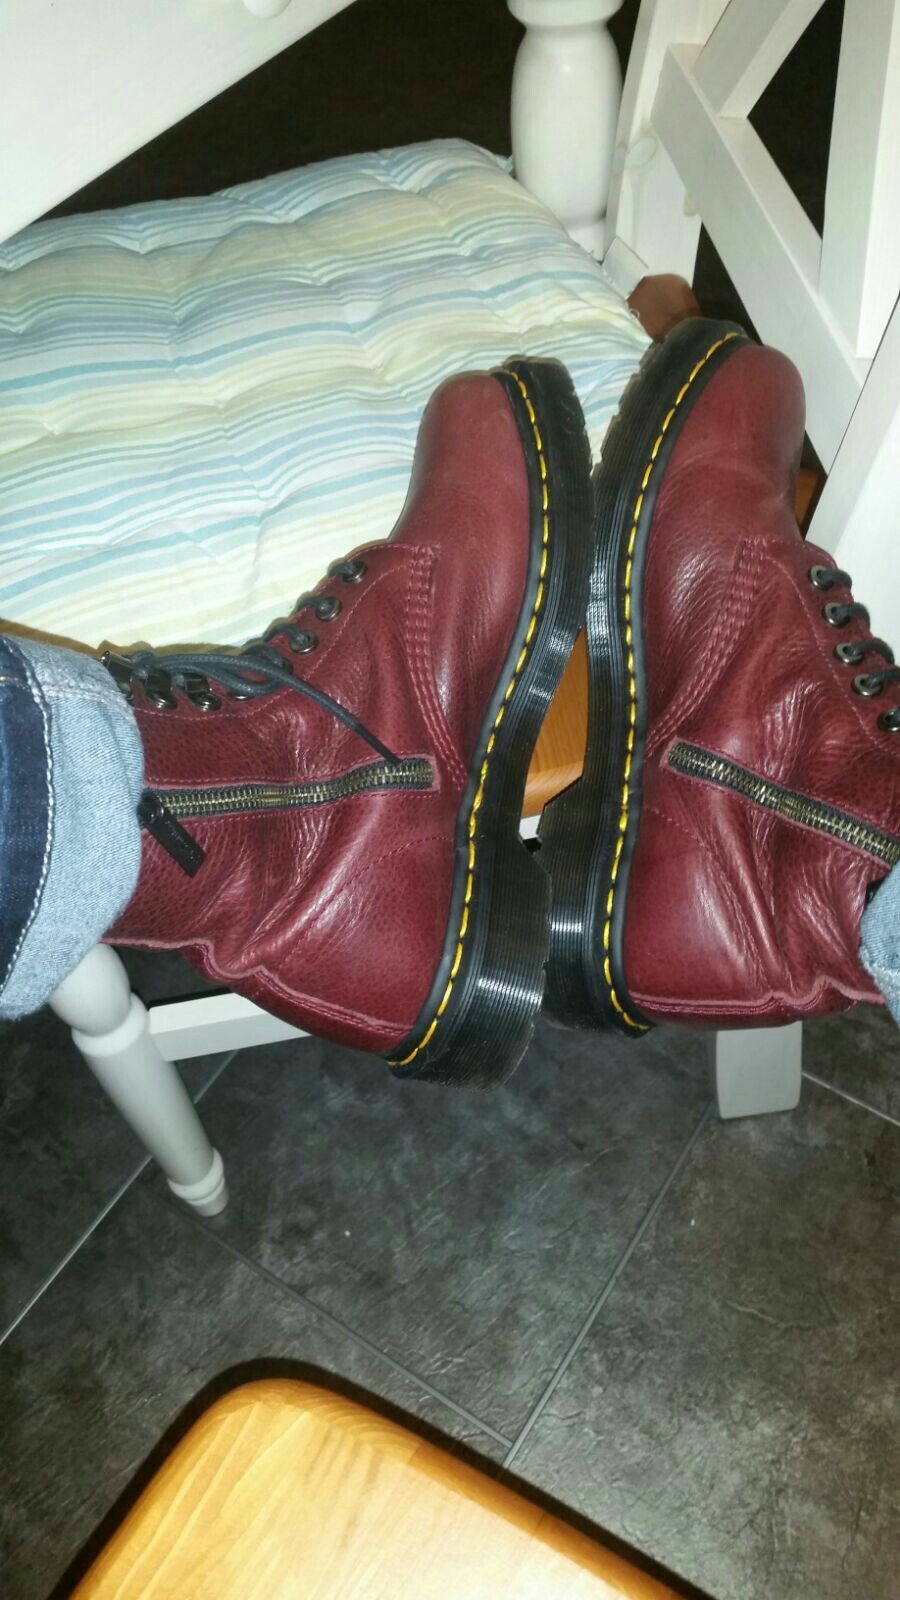 cool boots  very  nice  colour  and super  comfortable, I am usually  a high heel  wearer  but ...!  they are  just  brilliant